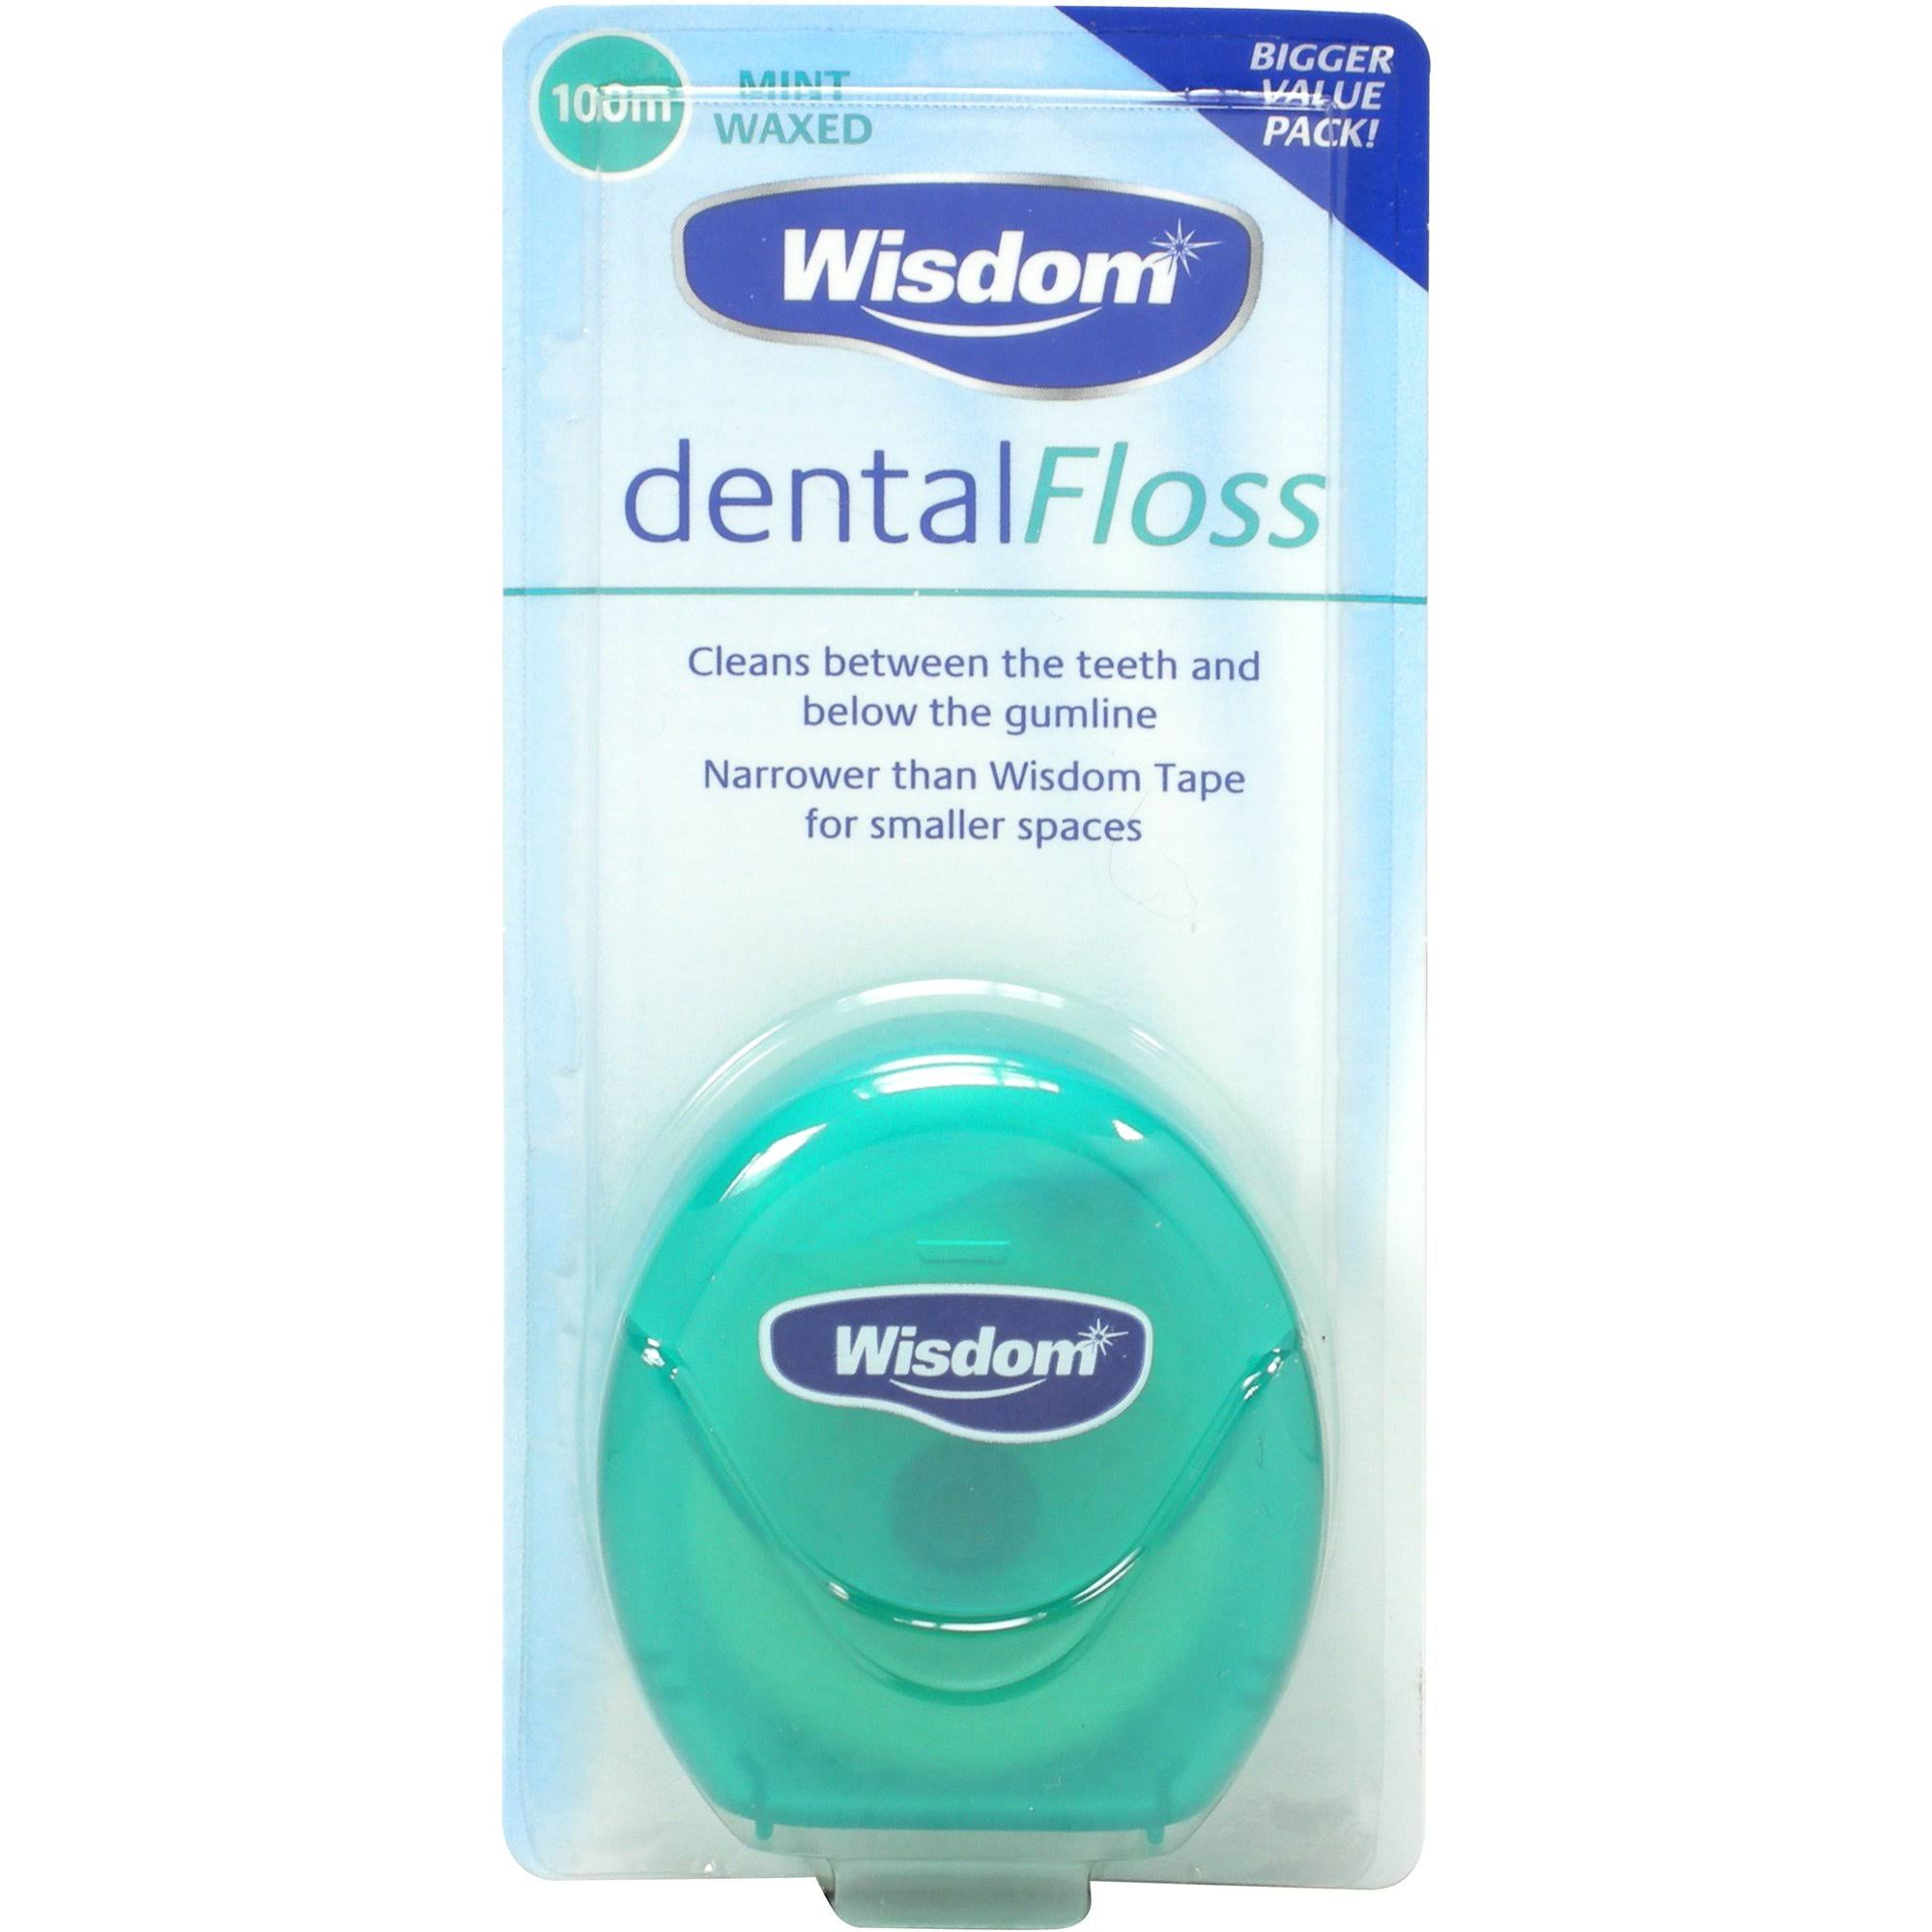 Wisdom Dental Floss - Mint Waxed, 100m